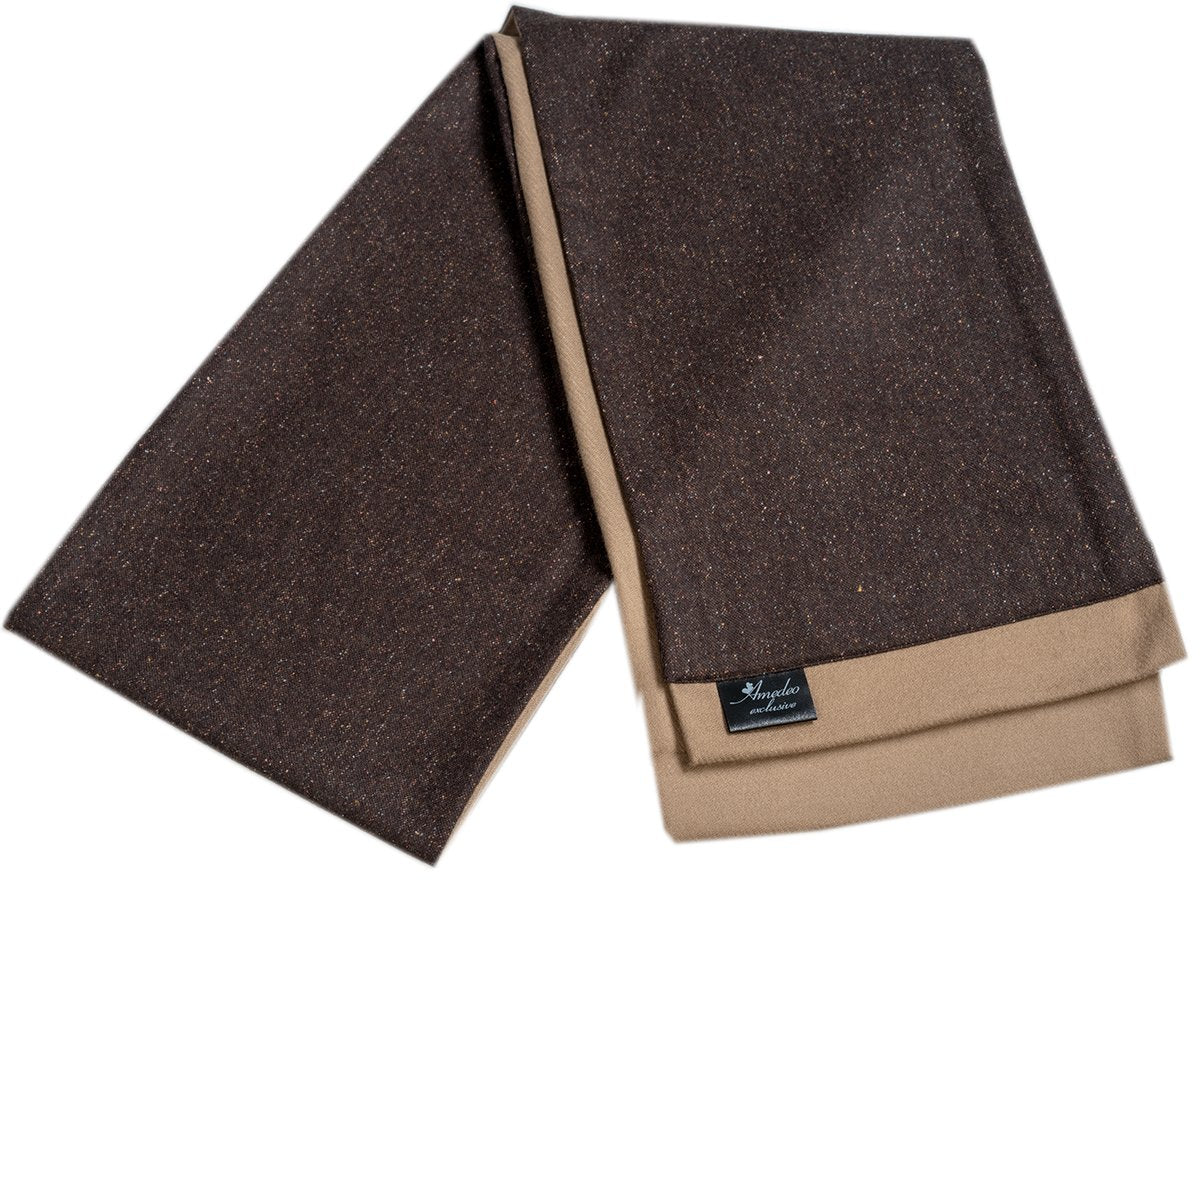 Men's Microfiber Soft Comfortable Brown Wool Scarf - Amedeo Exclusive